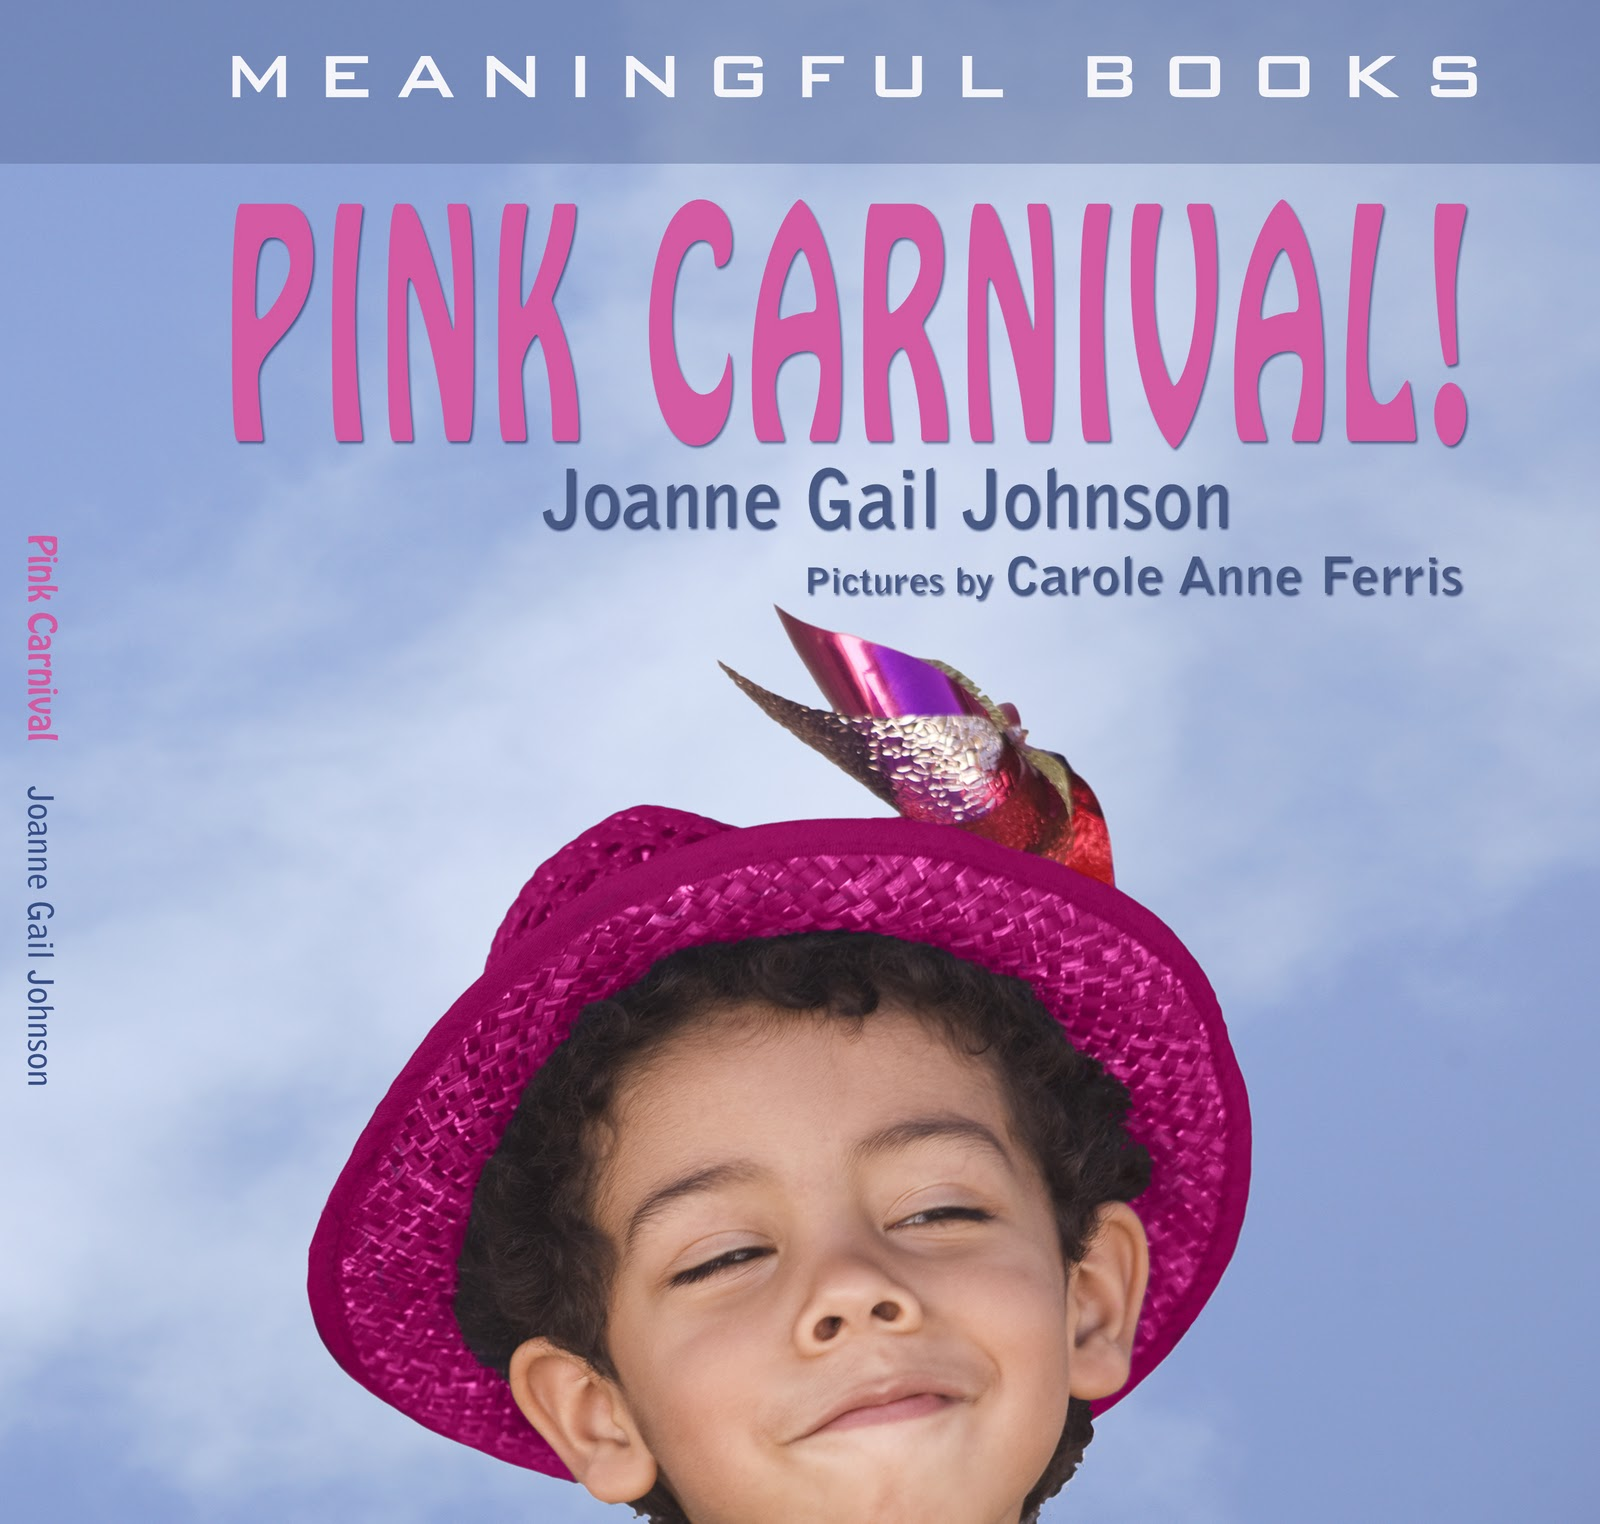 com/search?q=Pink+Carnival